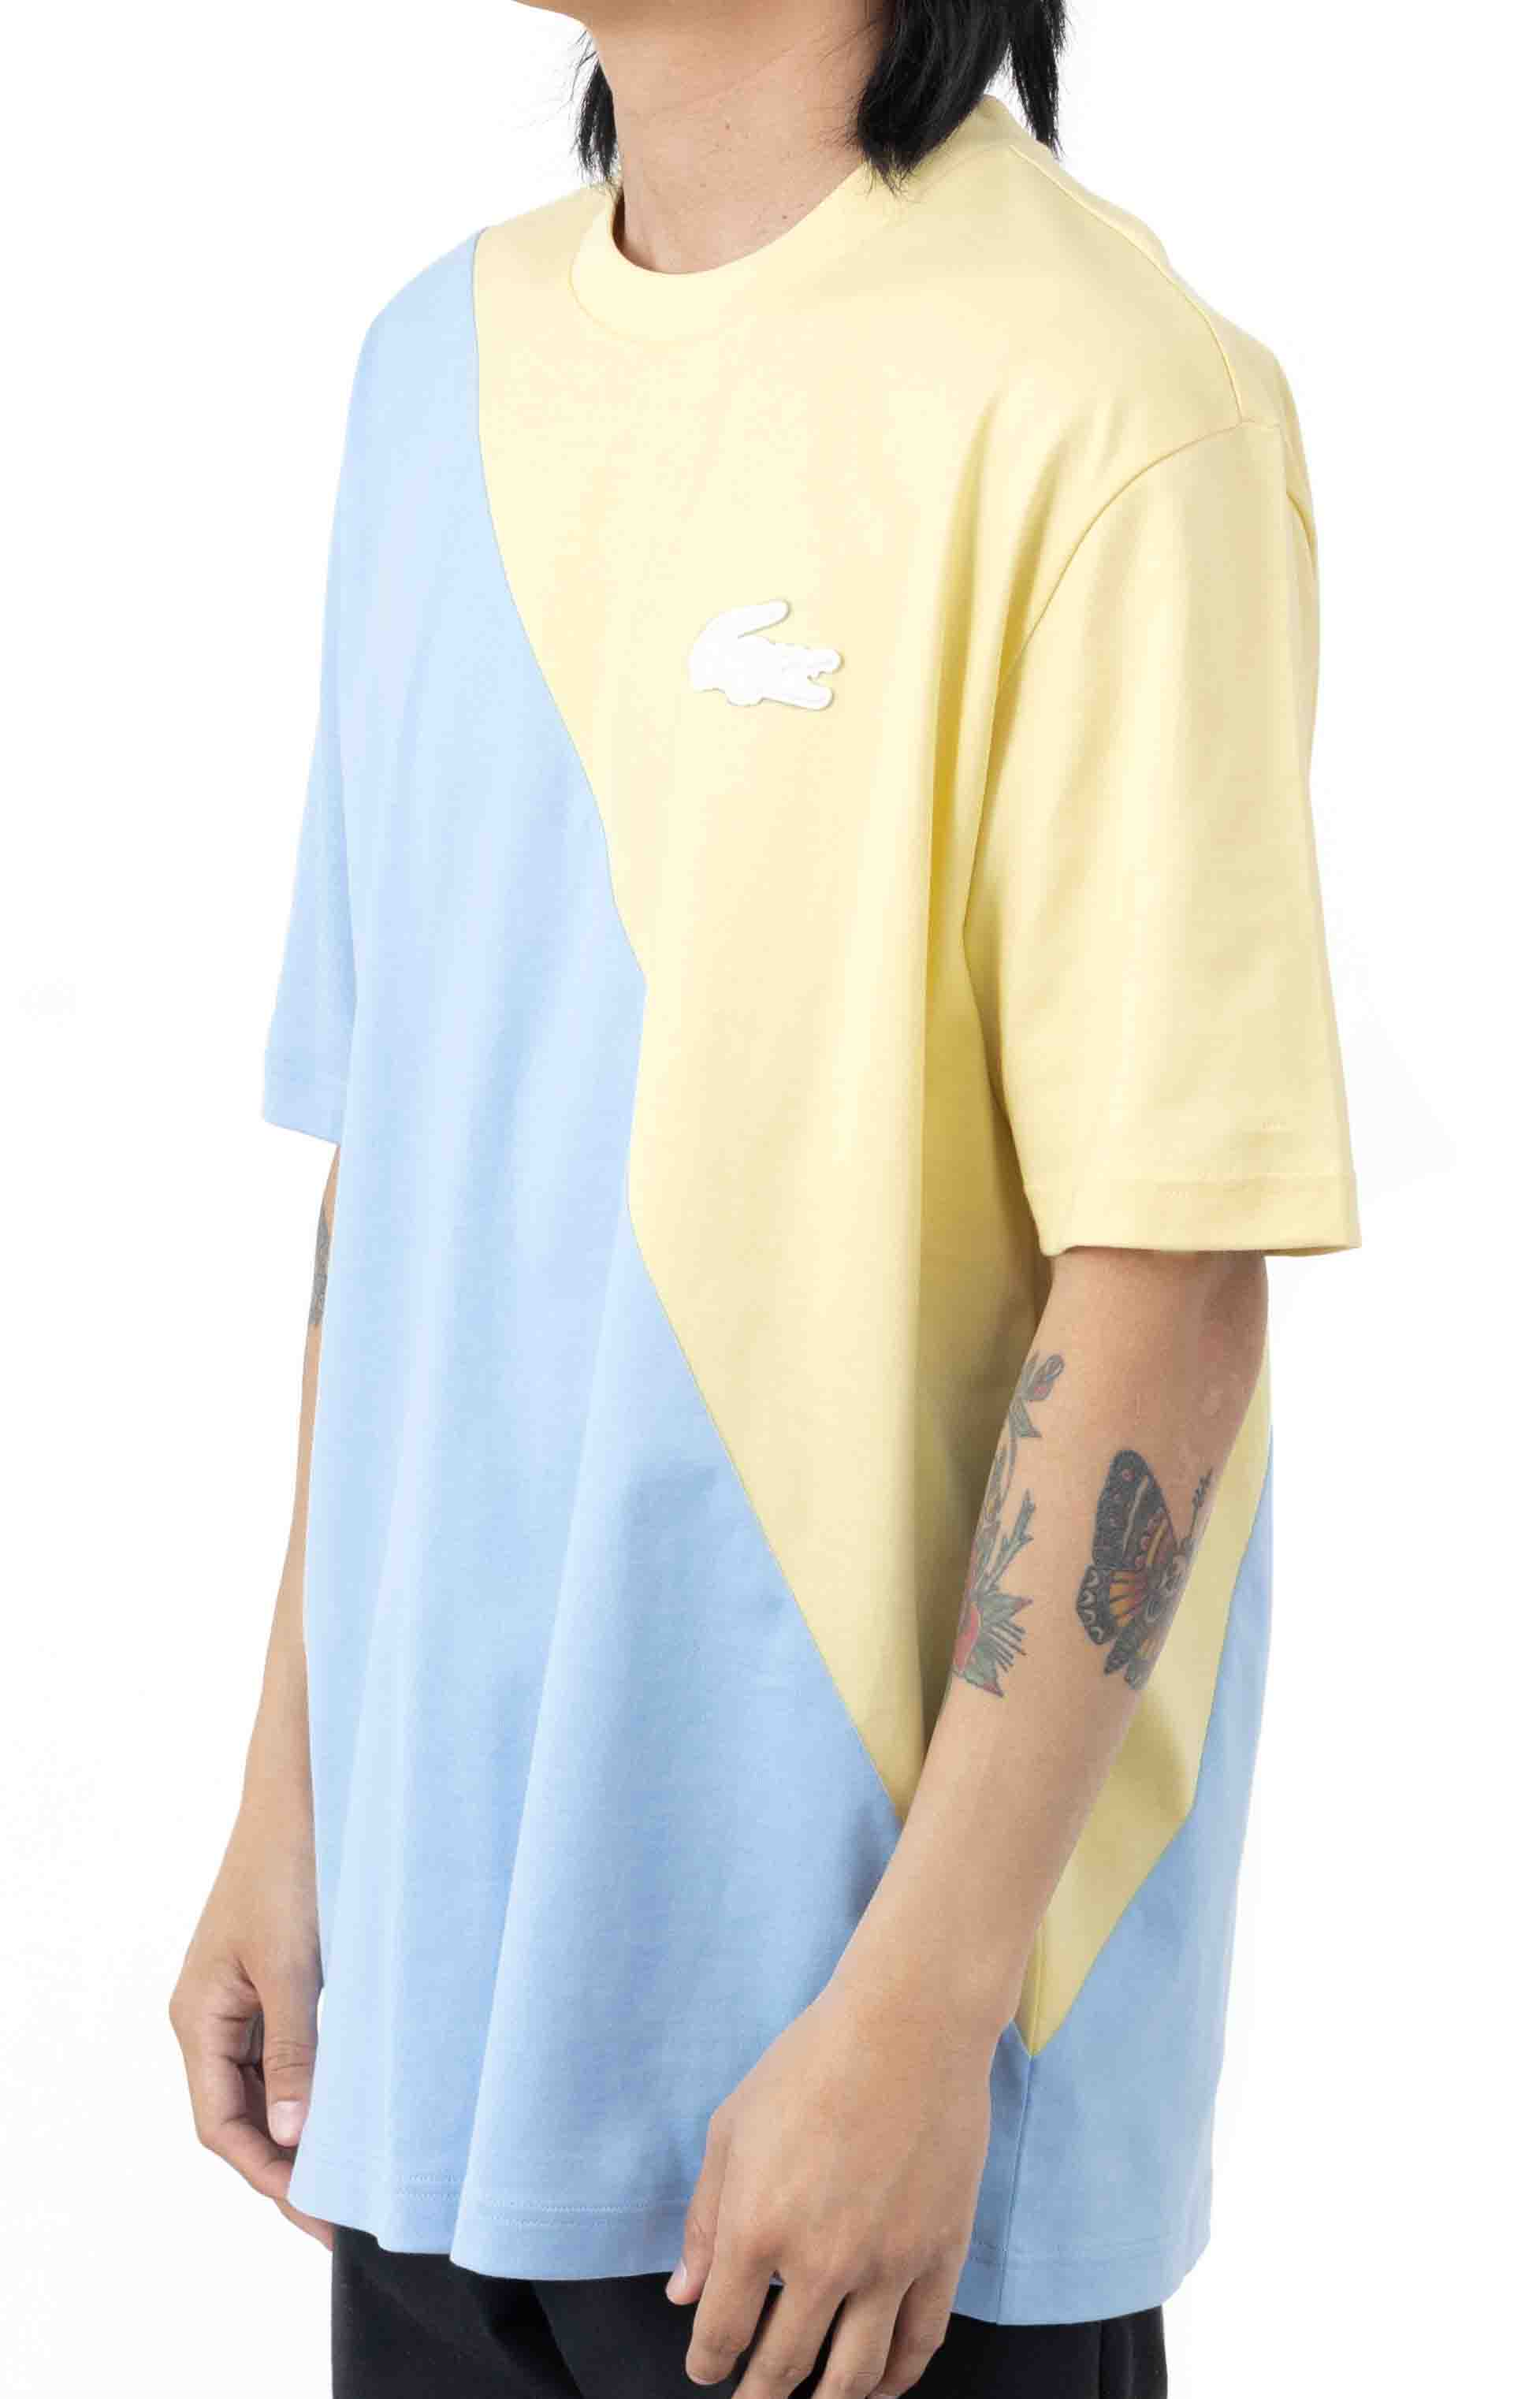 LIVE Loose Fit Colorblock T-Shirt - Yellow/Blue 2